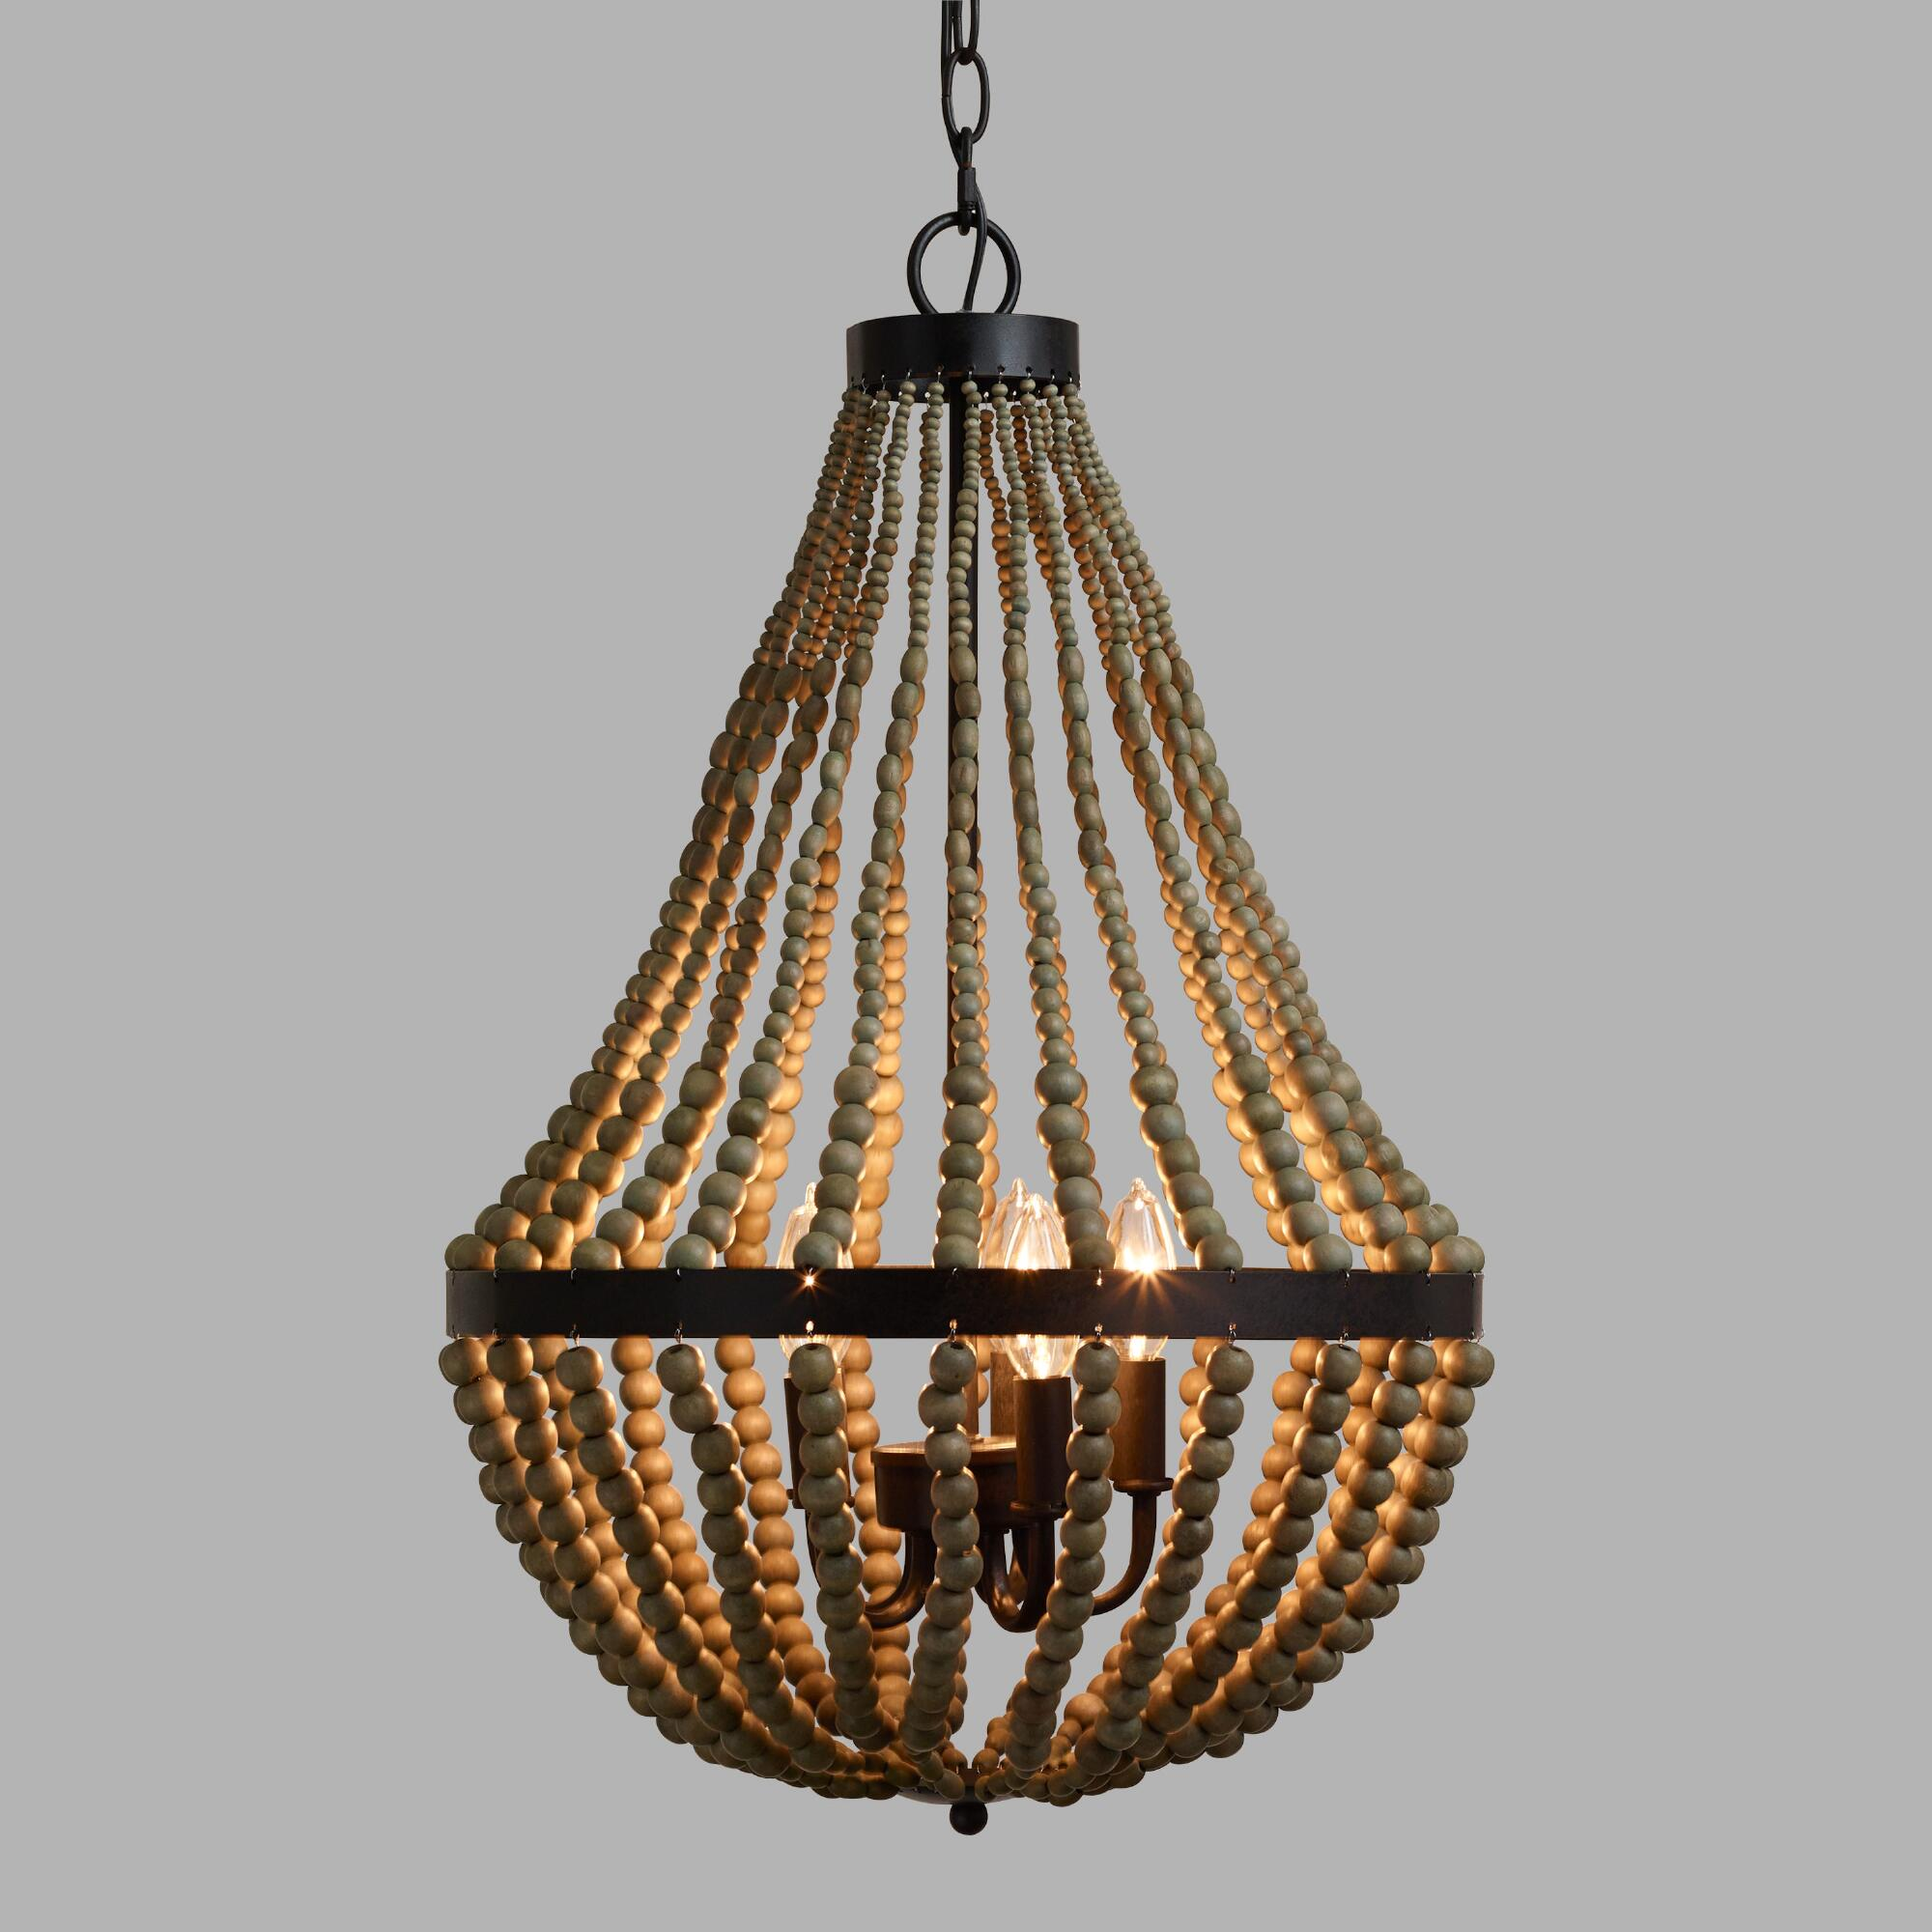 Small wood bead chandelier world market - Light fixtures chandeliers ...